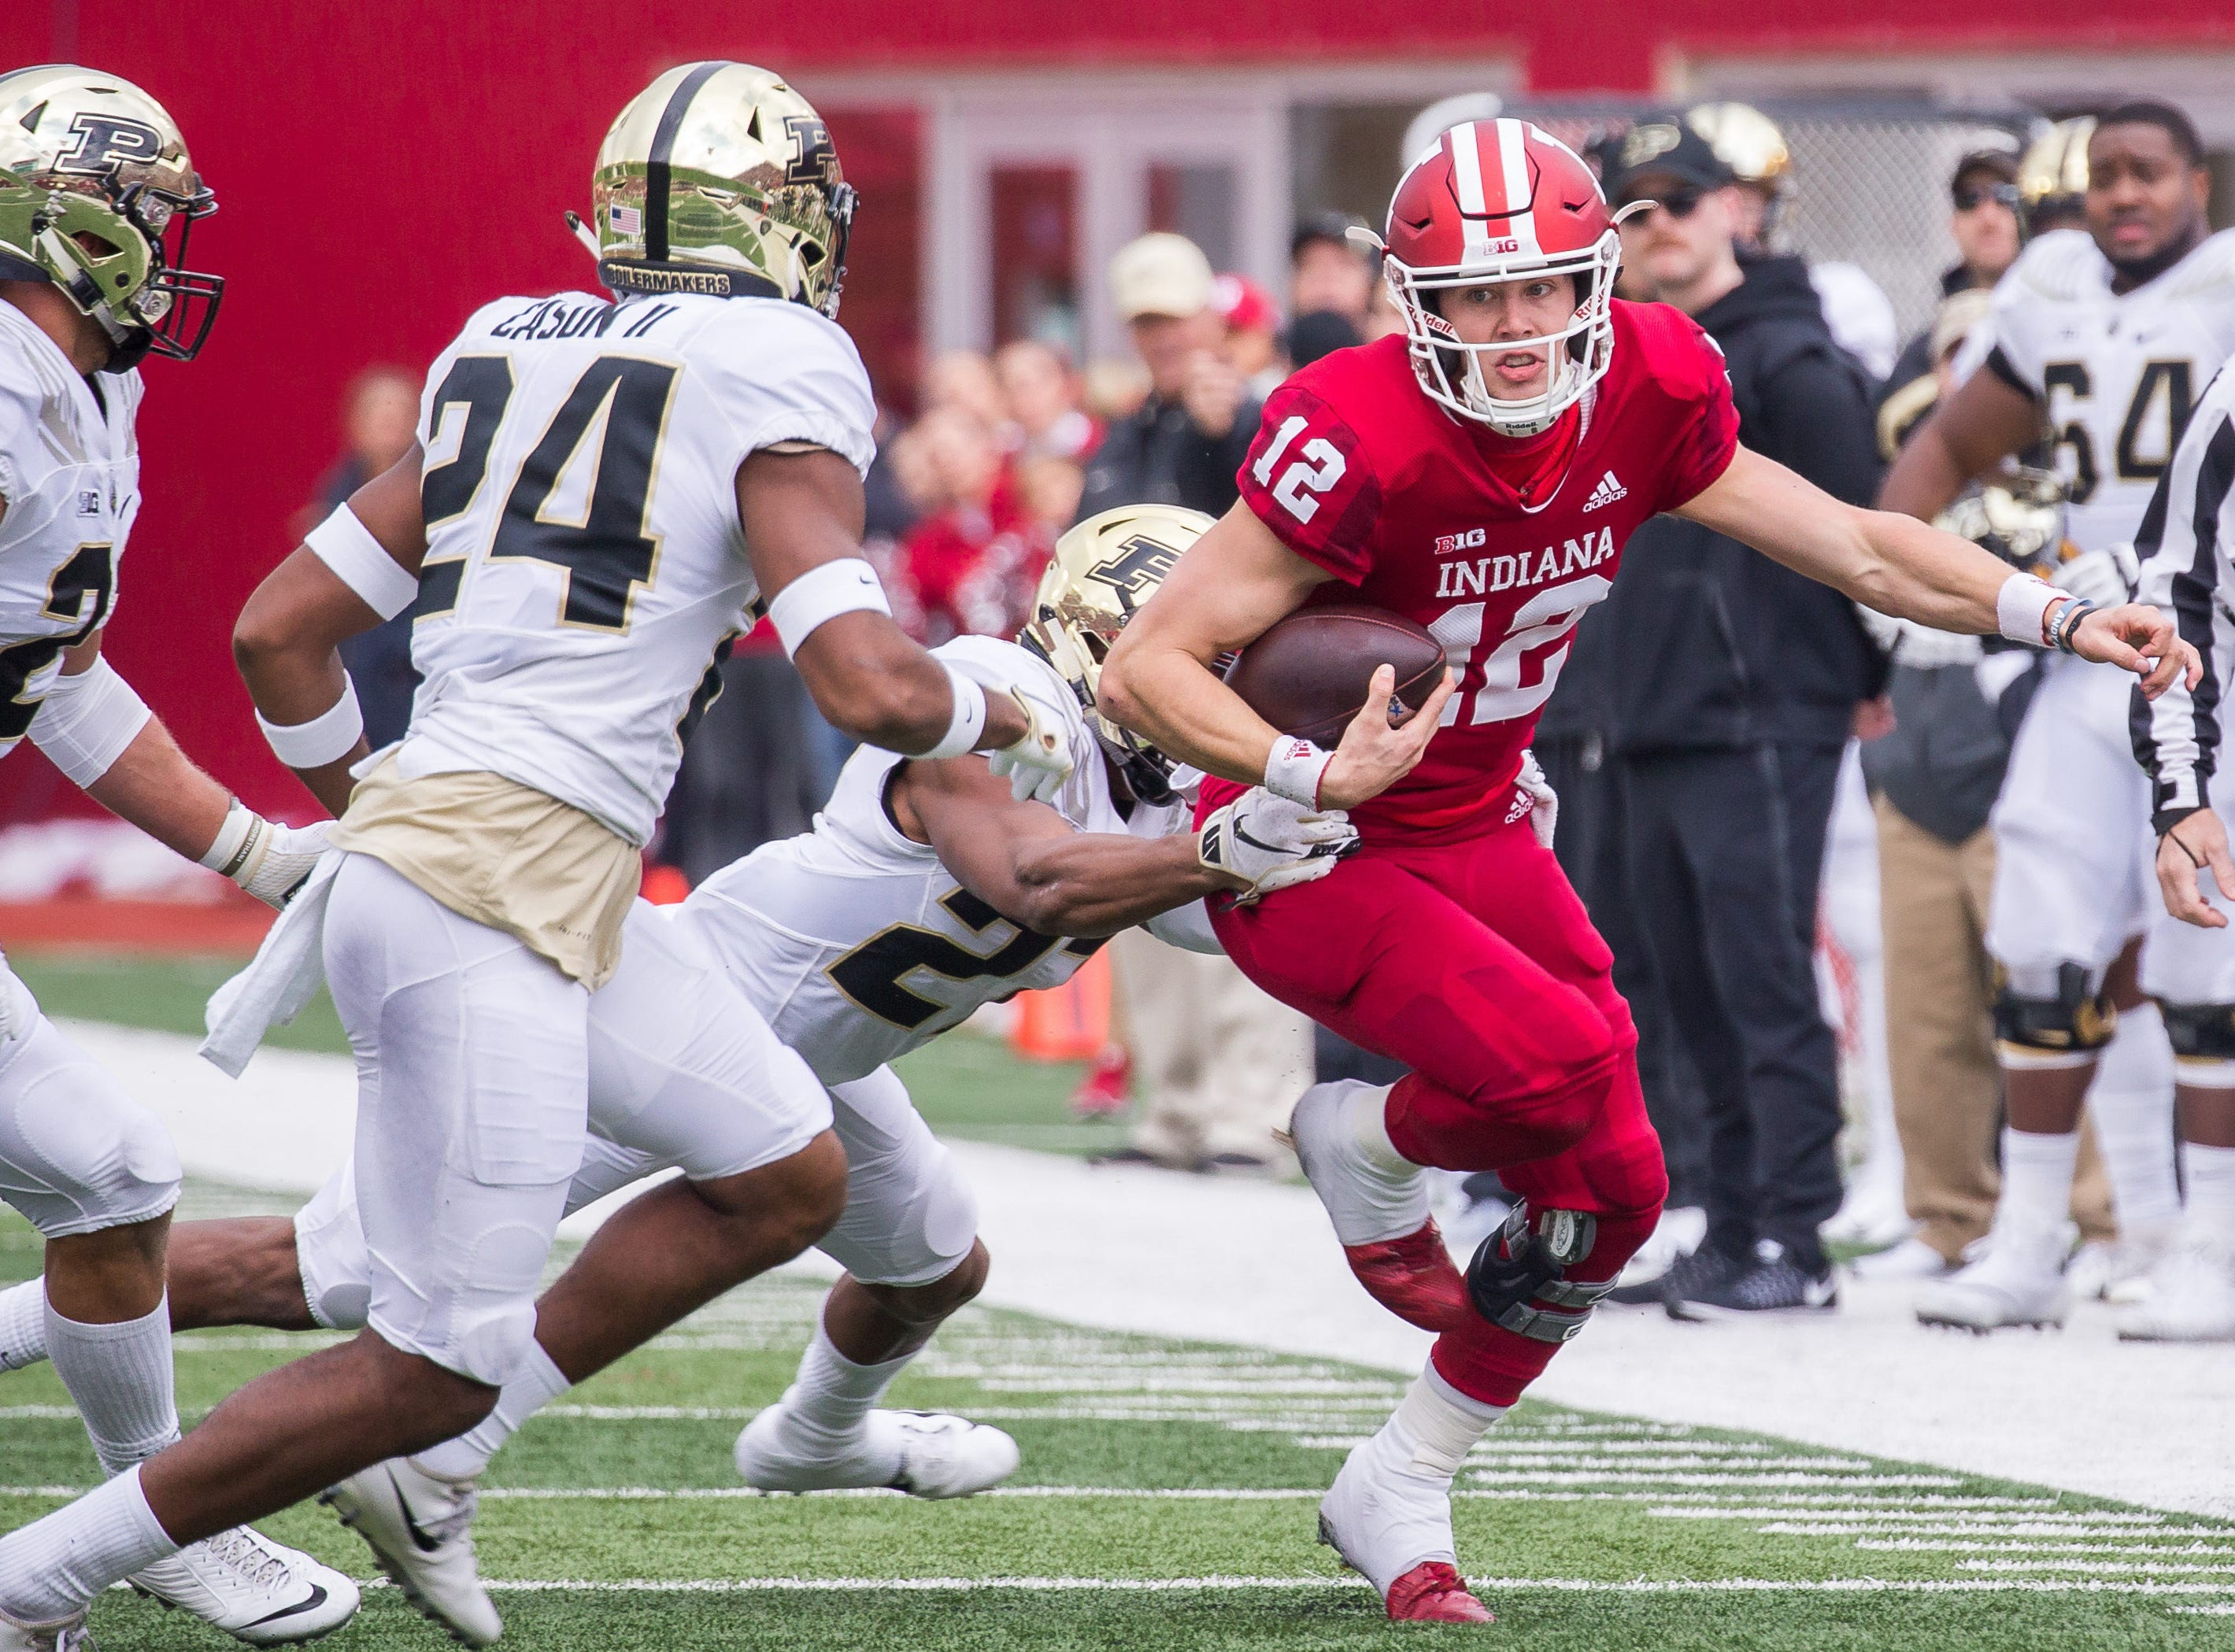 Indiana Hoosiers quarterback Peyton Ramsey (12) is tackled by Purdue Boilermakers safety Navon Mosley (27) in the first quarter at Memorial Stadium.